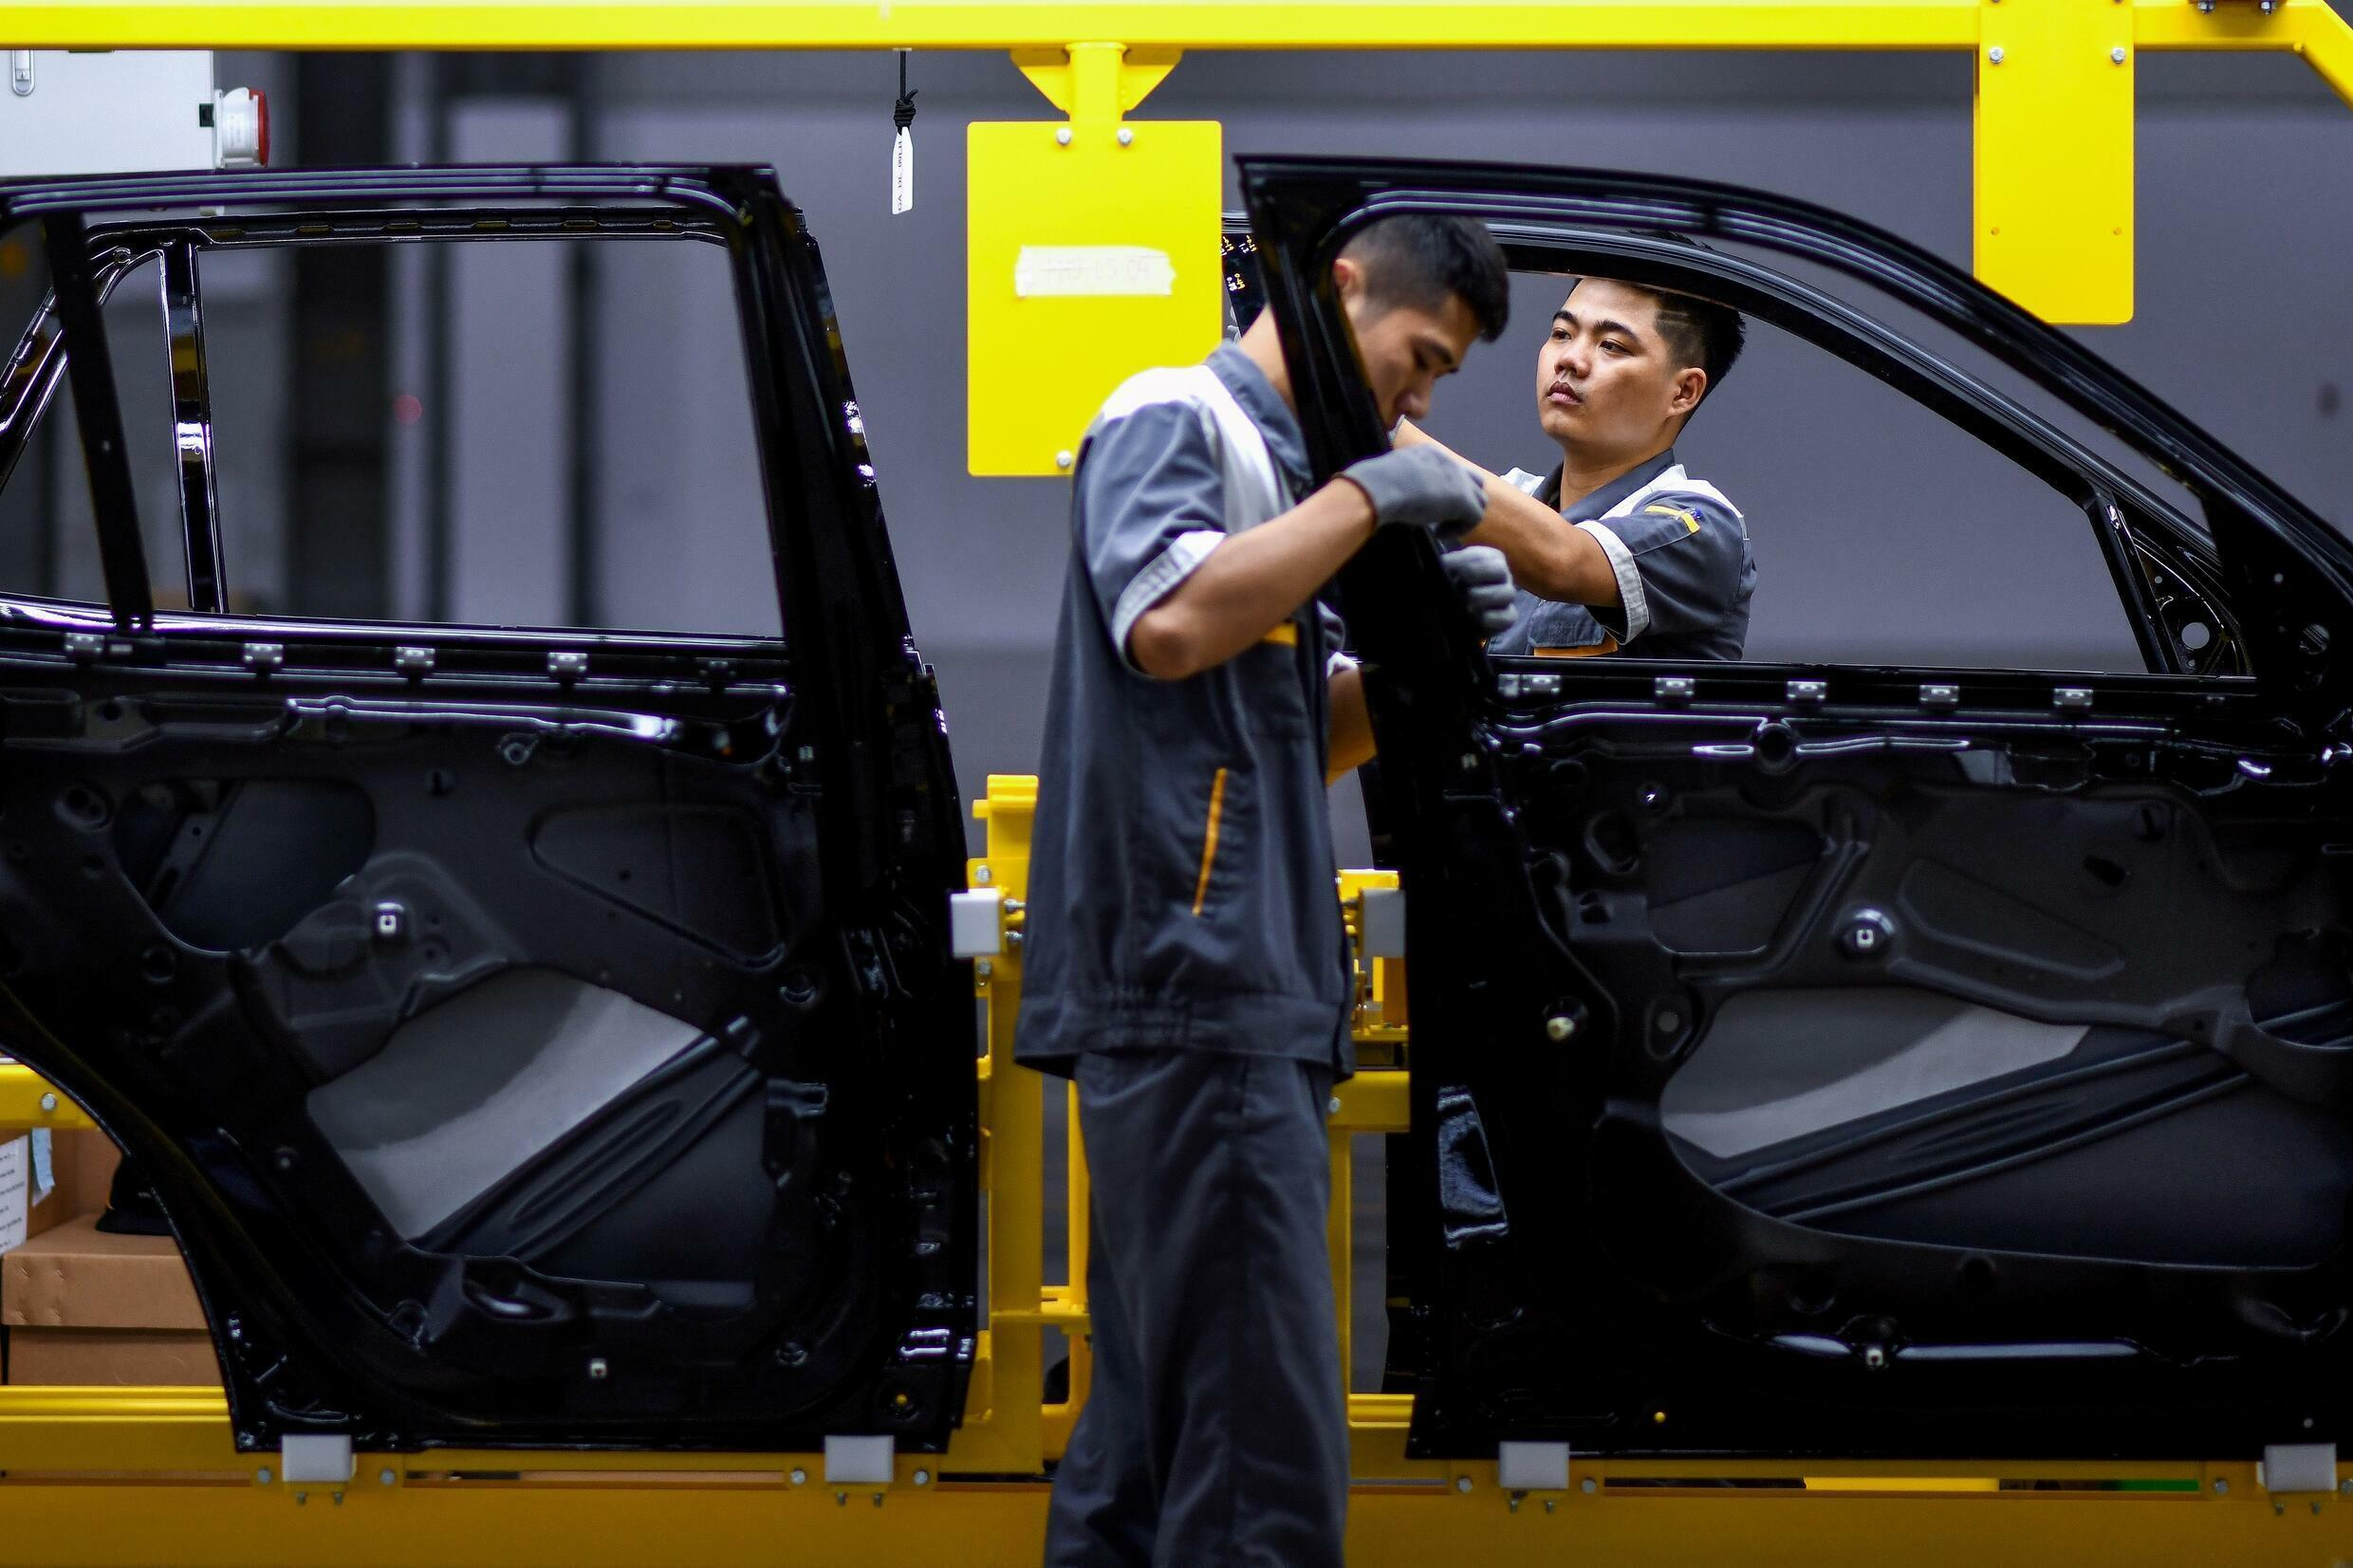 The pandemic has not only hit the Vietnamese textile industry, but also threatens automakers